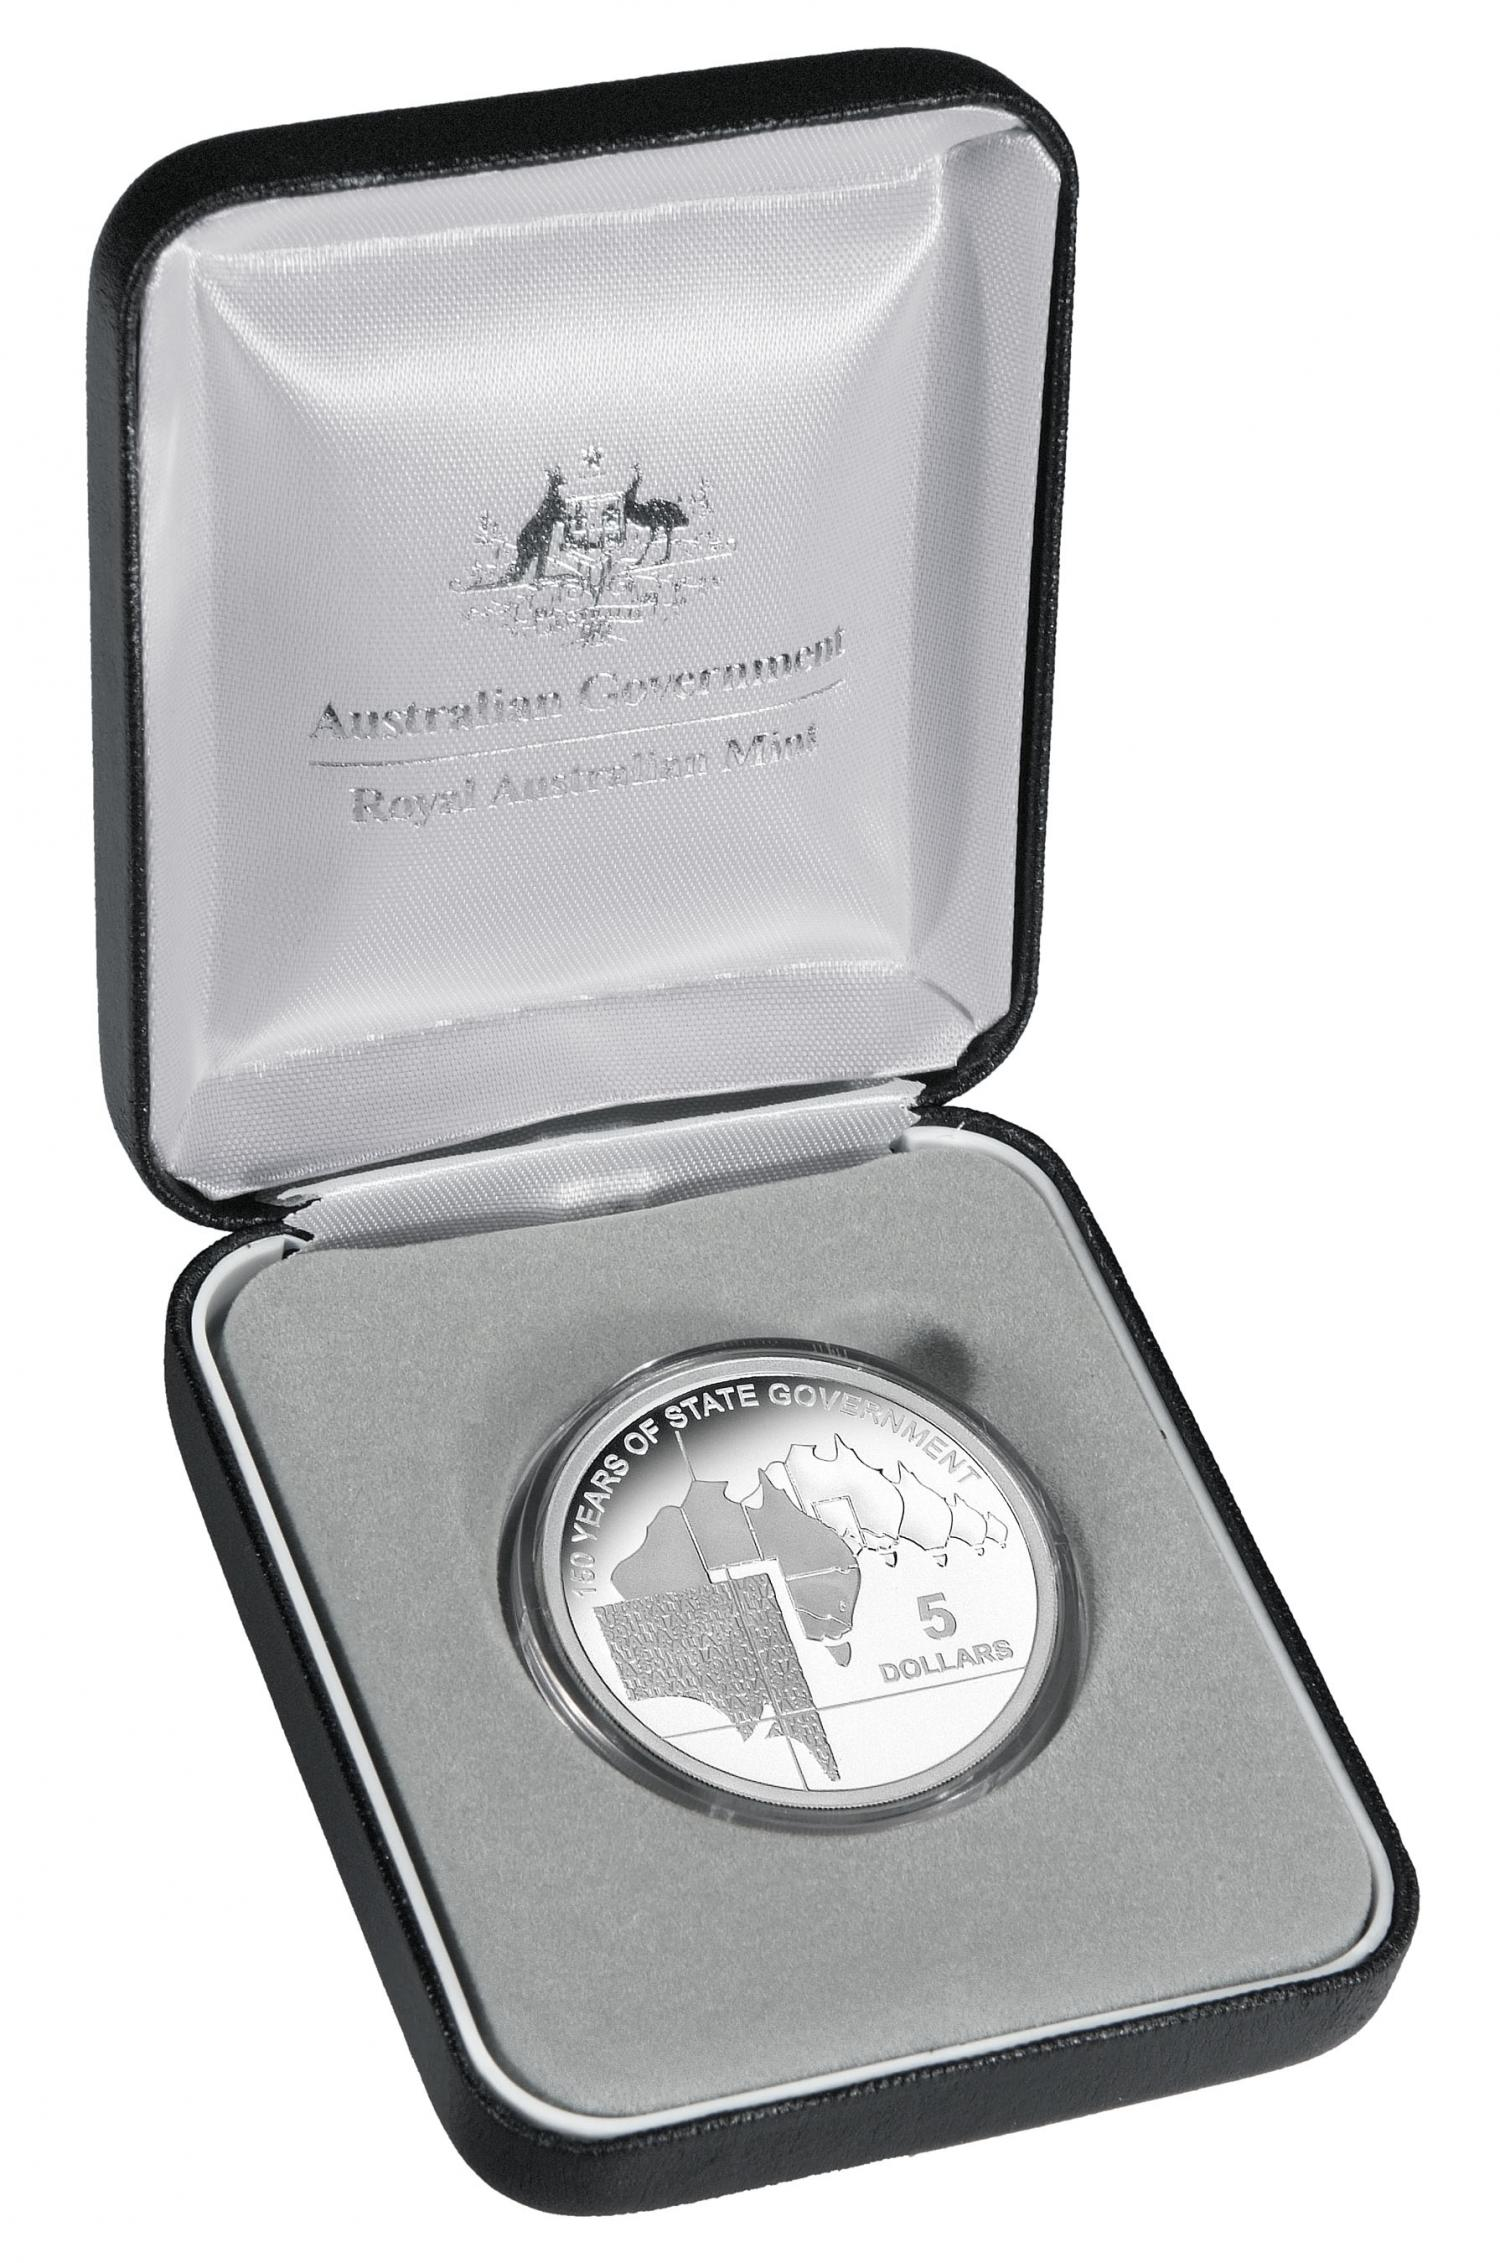 Thumbnail for 2007 $5.00 Silver Proof South Australia 150 Years of State Government